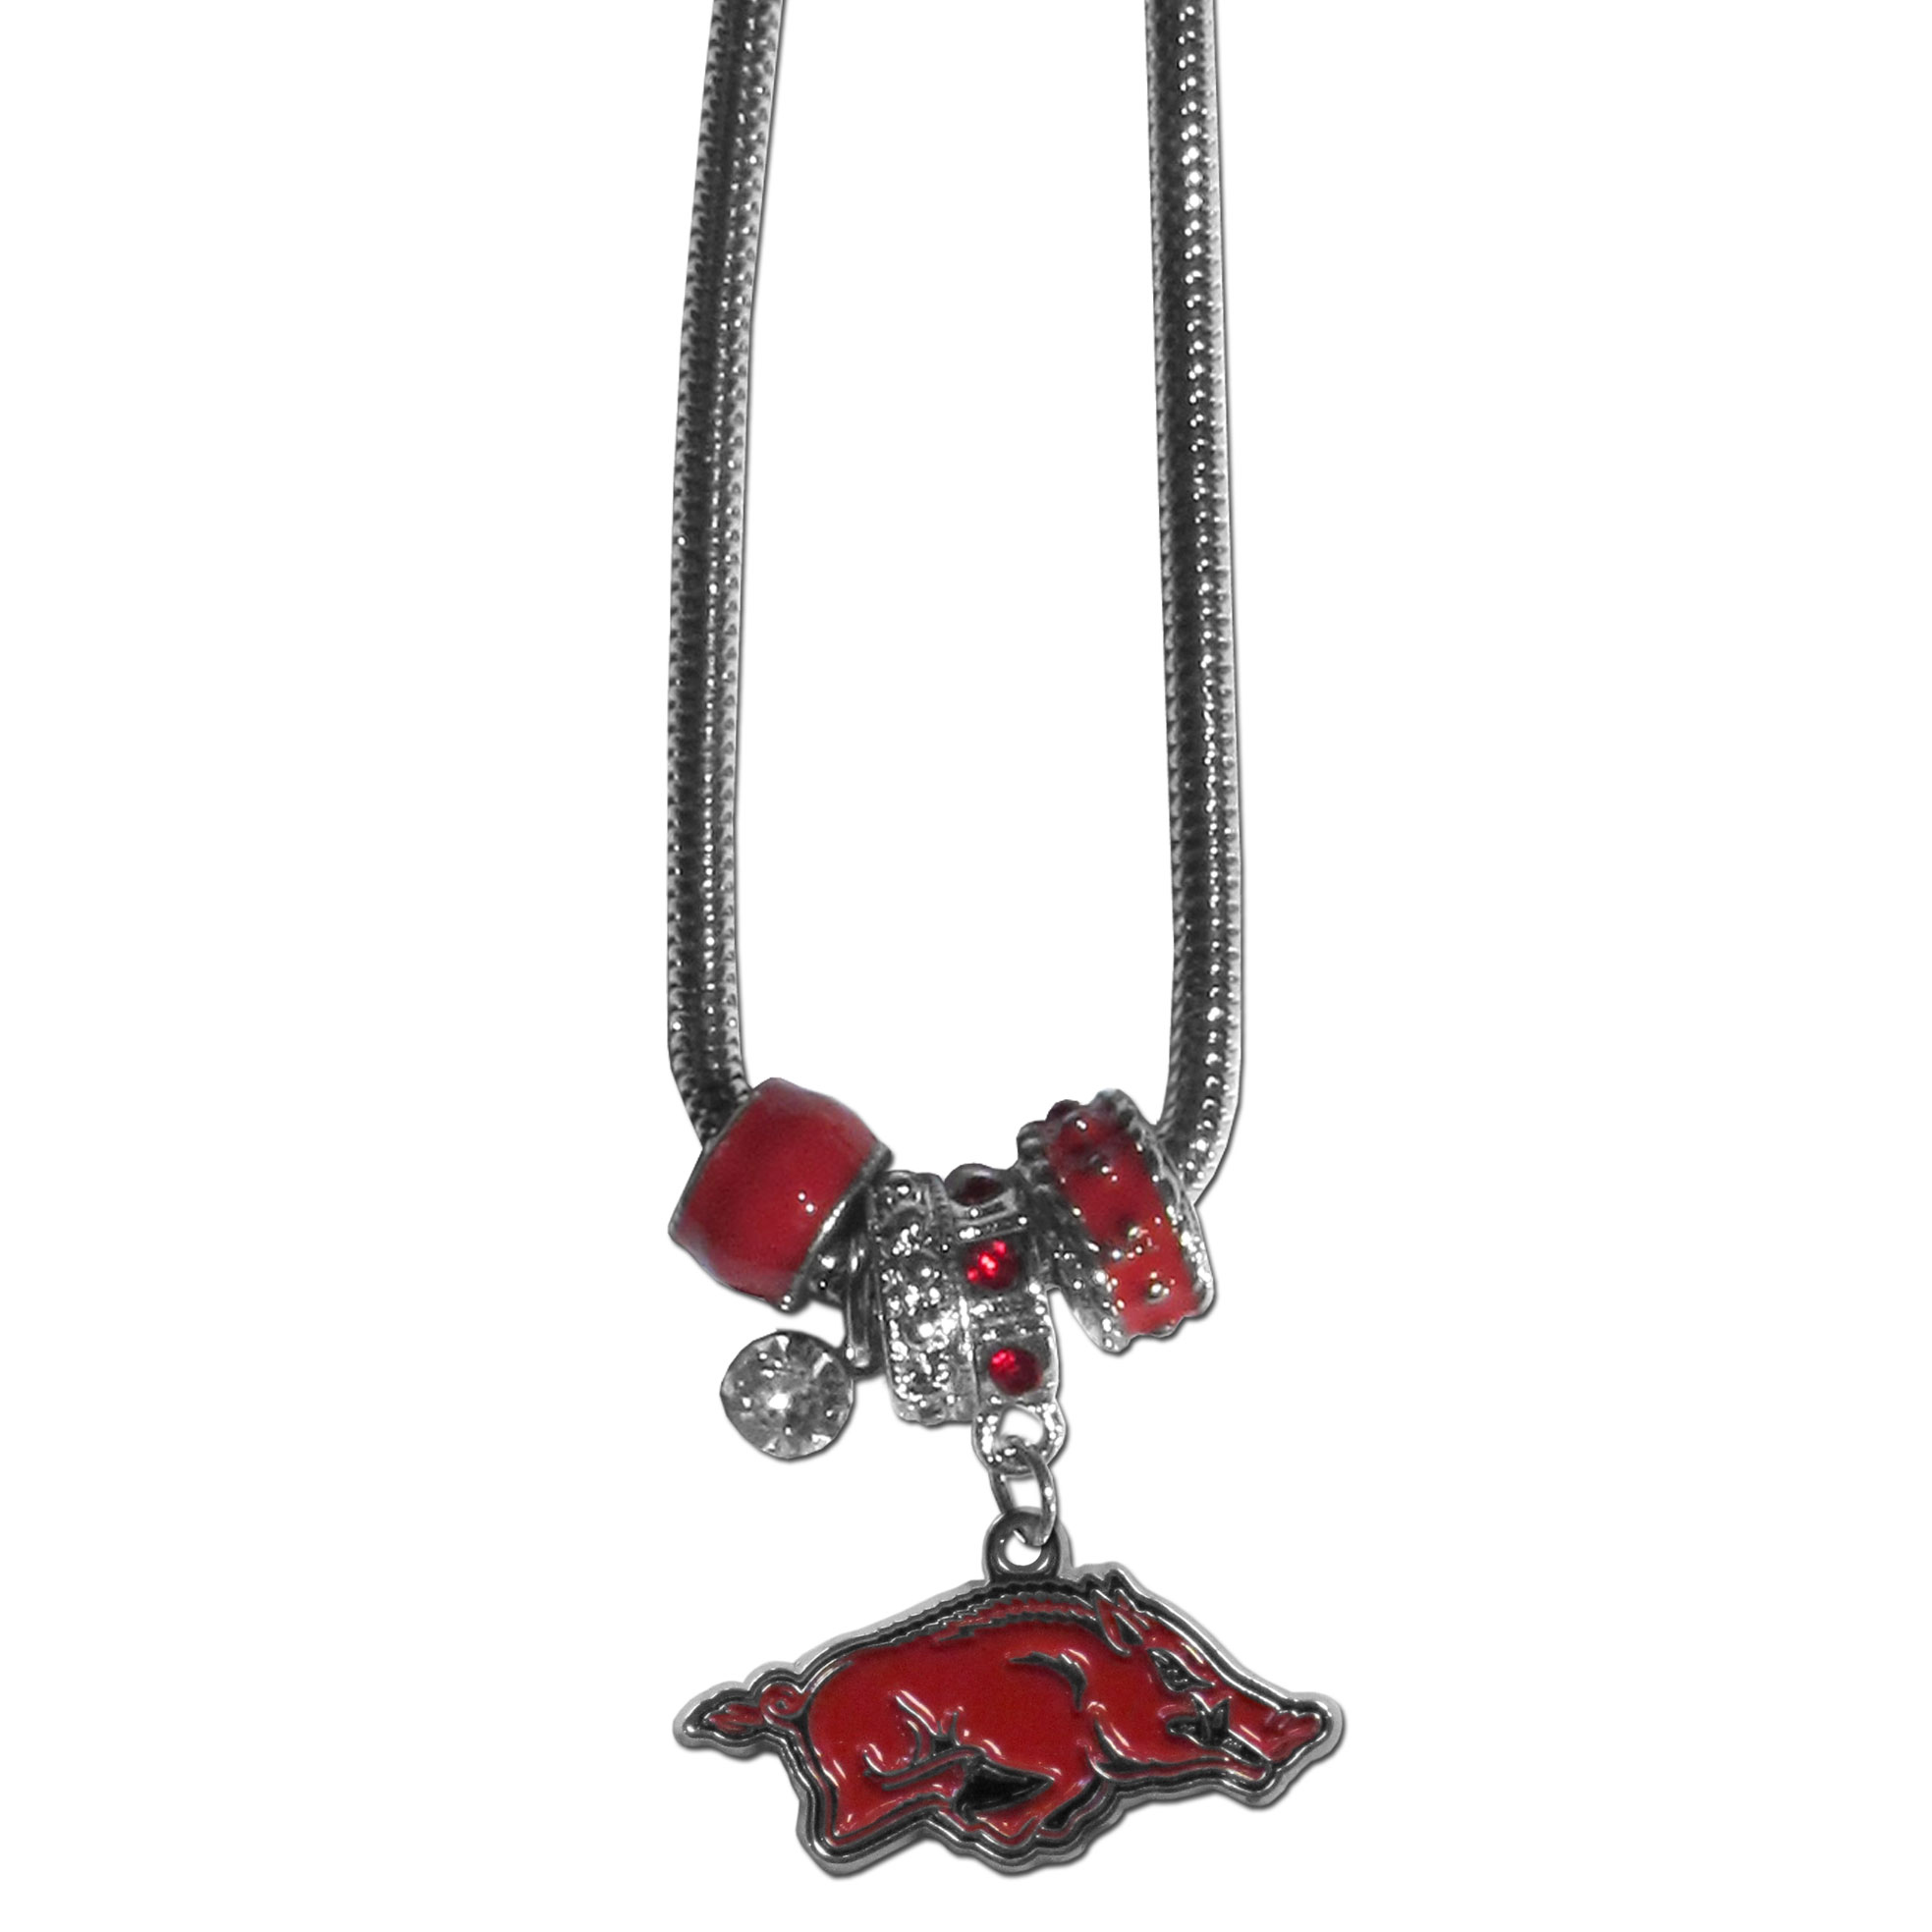 Arkansas Razorbacks Euro Bead Necklace - We have combined the wildly popular Euro style beads with your favorite team to create our Arkansas Razorbacks Euro bead necklace. The 18 inch snake chain features 4 Euro beads with enameled team colors and rhinestone accents with a high polish, nickel free charm and rhinestone charm. Arkansas Razorbacks Euro Bead Necklace is the perfect way to show off your team pride. Thank you for shopping with CrazedOutSports.com